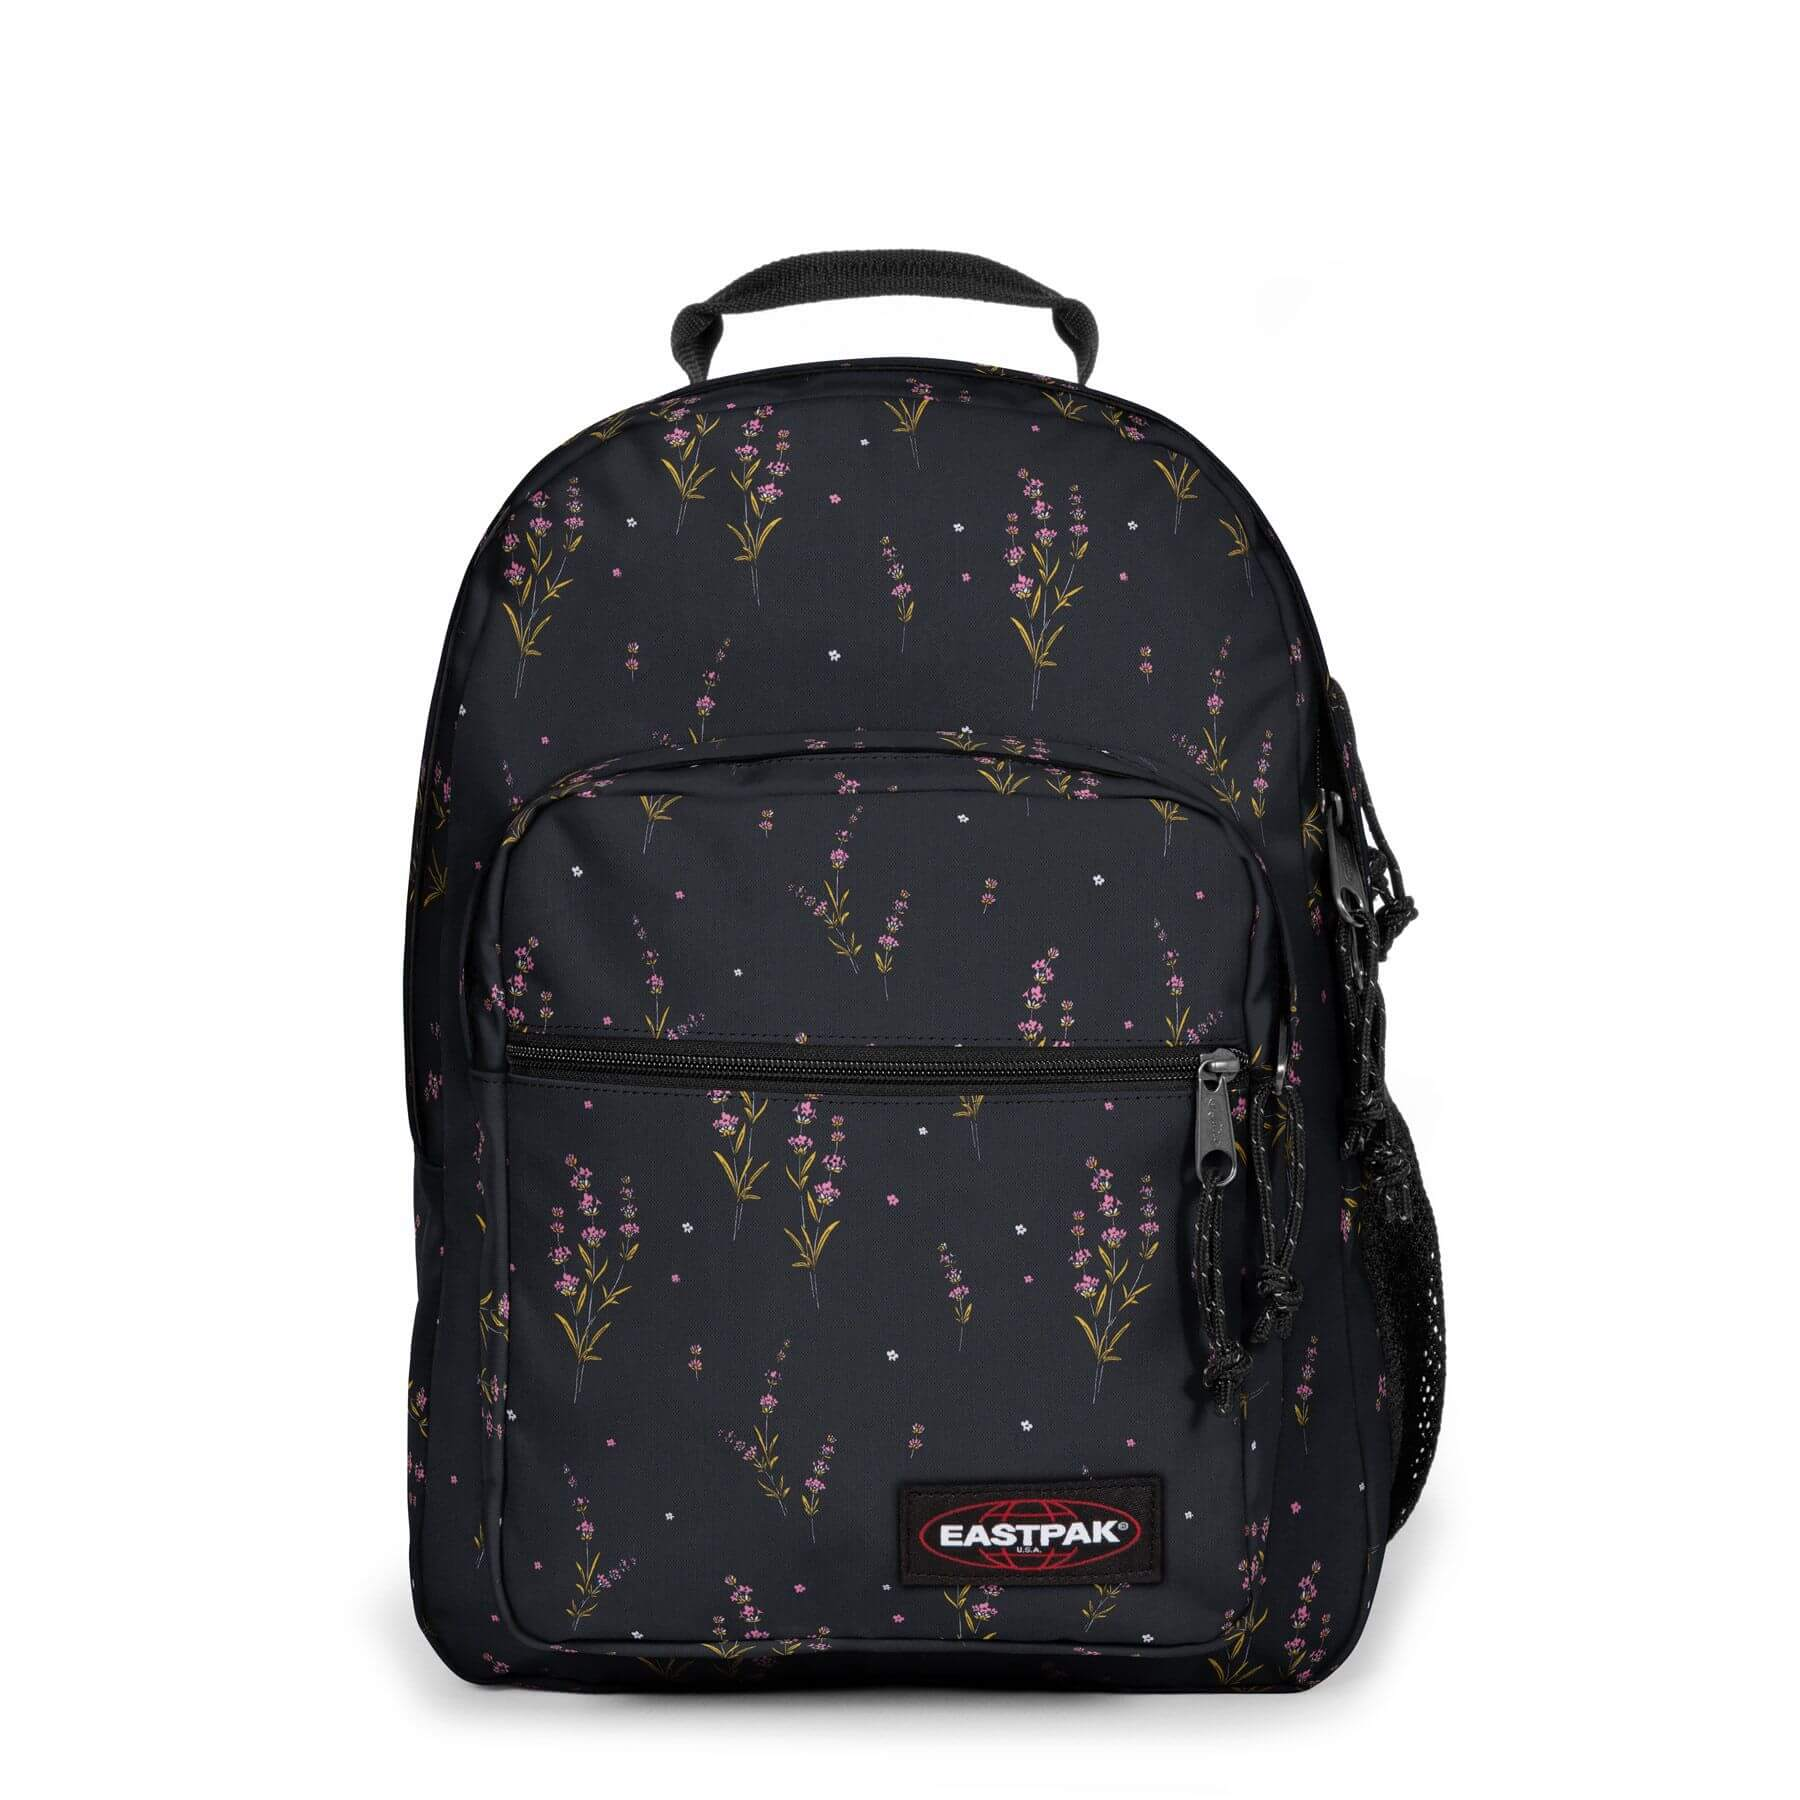 Eastpak Morius Wild Black